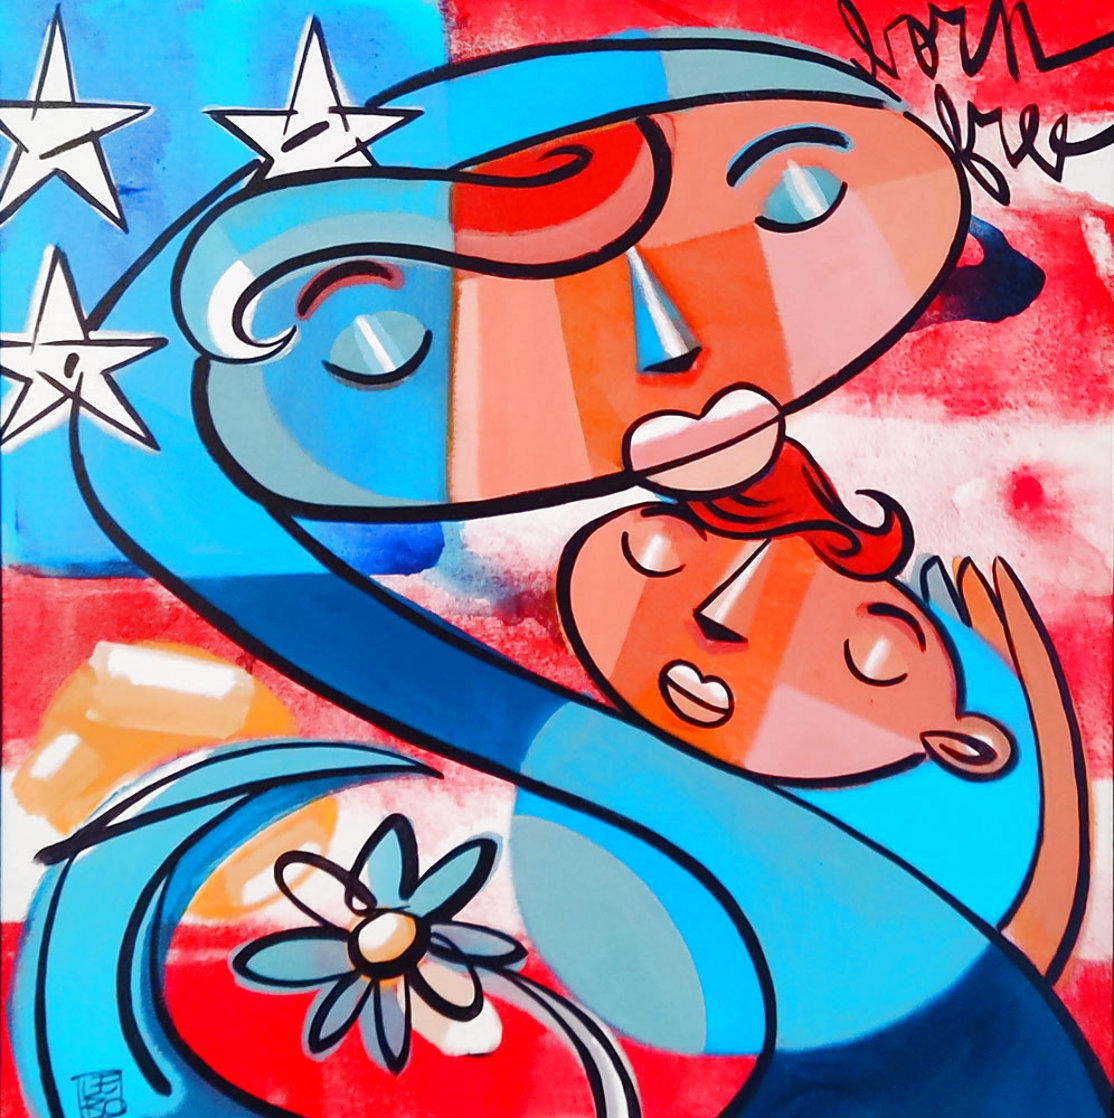 Mother And Child - Let Freedom Ring 2013 Limited Edition Print by David Le Batard Lebo